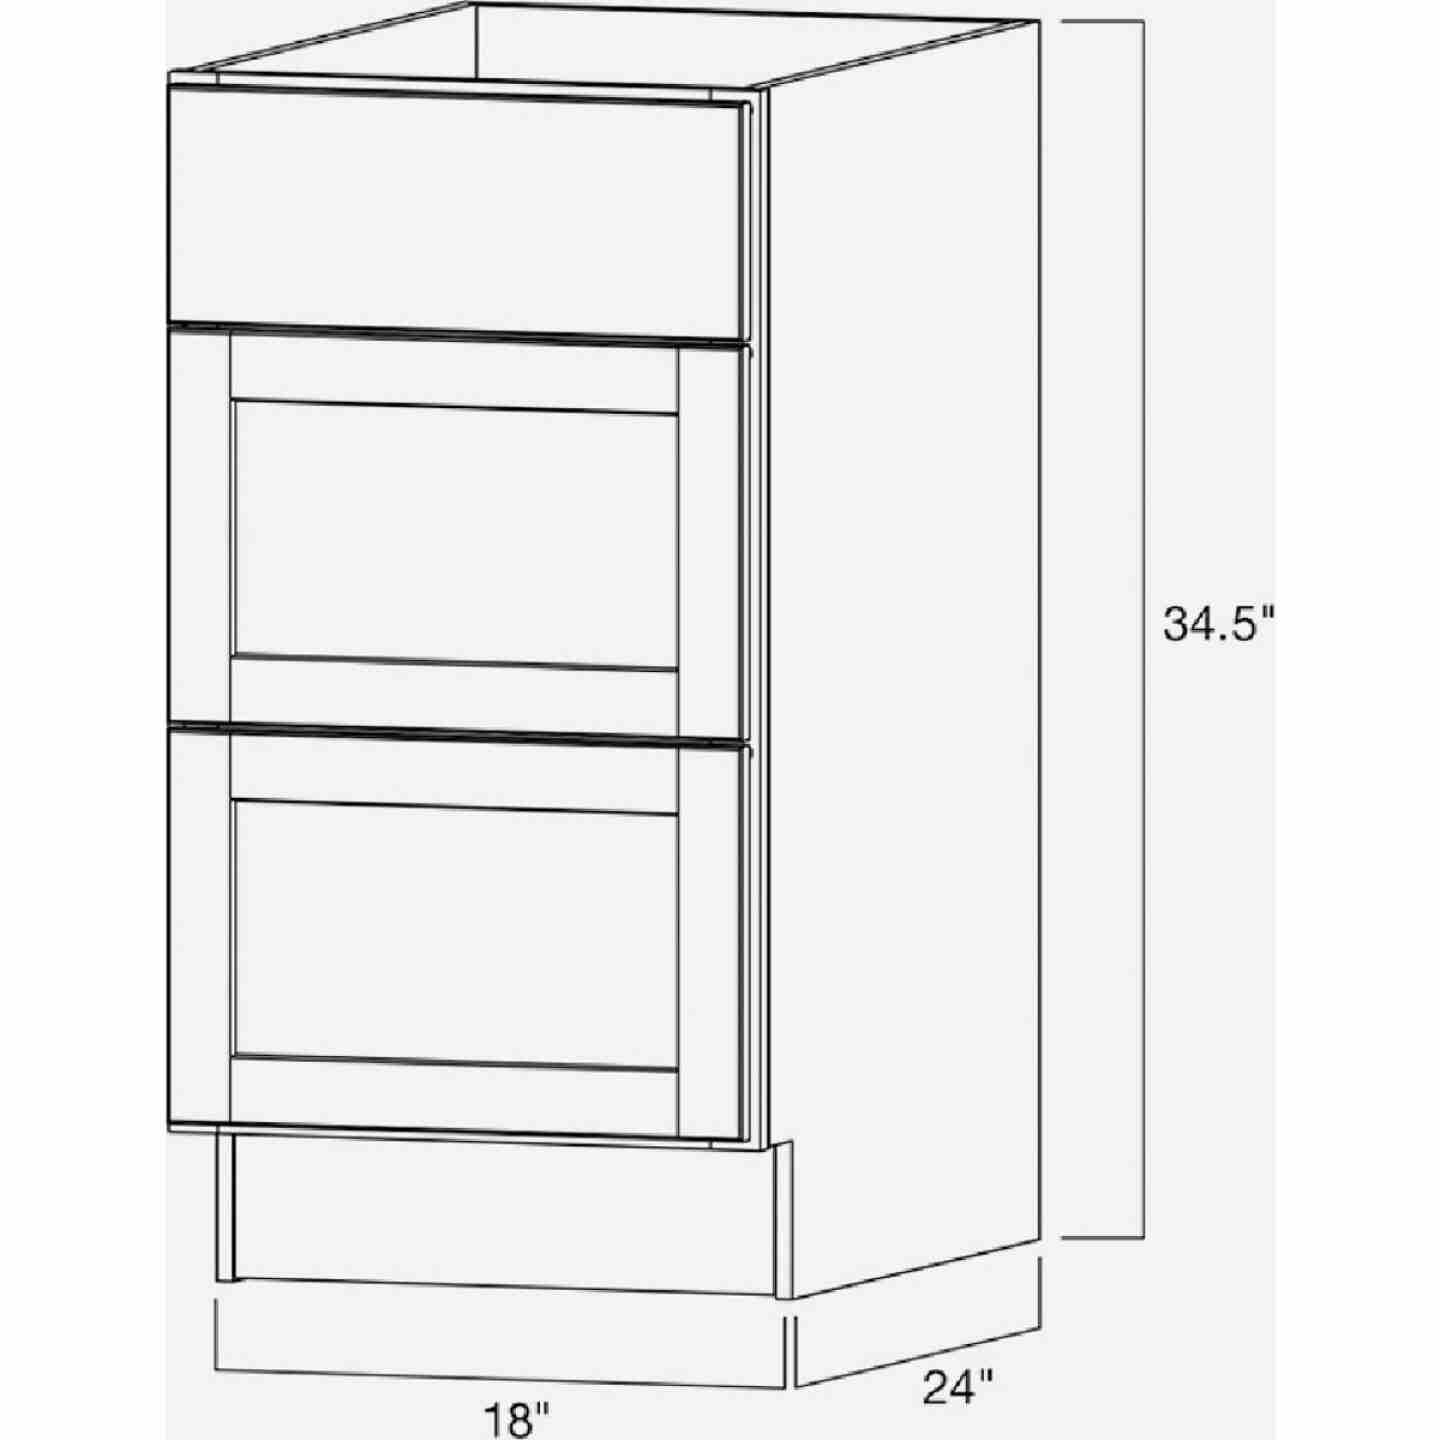 Continental Cabinets Andover Shaker 18 In. W x 34-1/2 In. H x 24 In. D White Thermofoil Kitchen Cabinet Drawer Base Image 4